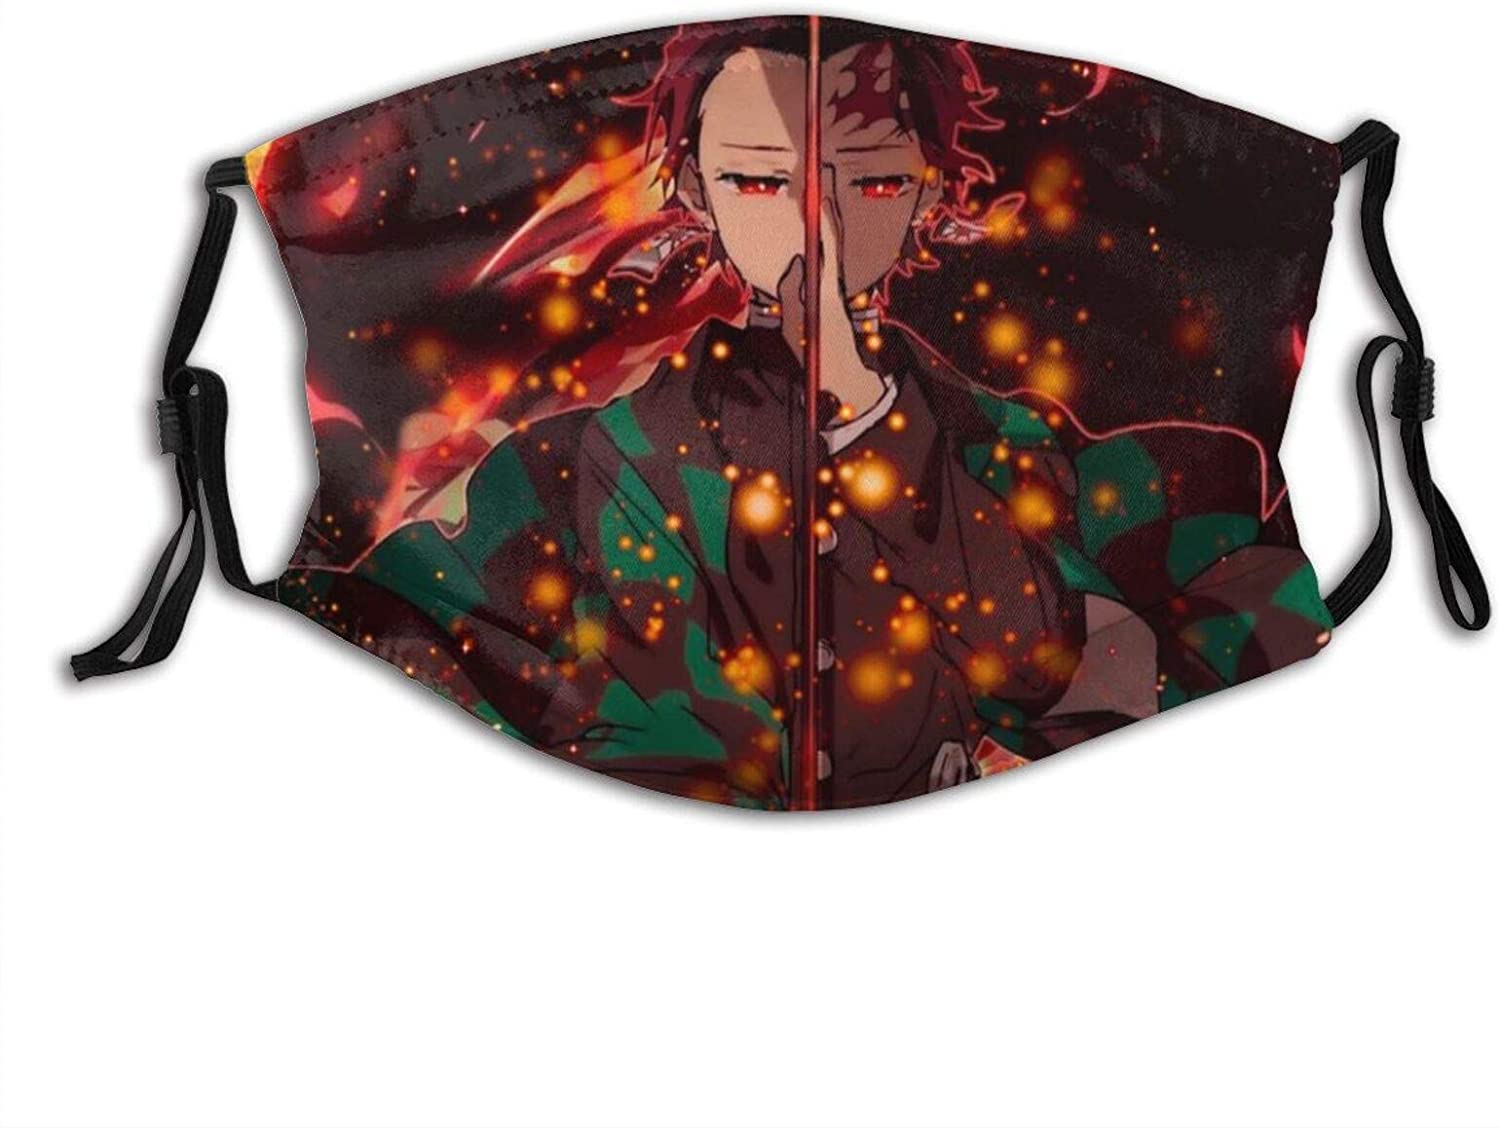 Japanese Anime Comic Adult Outdoor Mask,Protective 5-Layer Activated Carbon Filters for Men Women Bandana